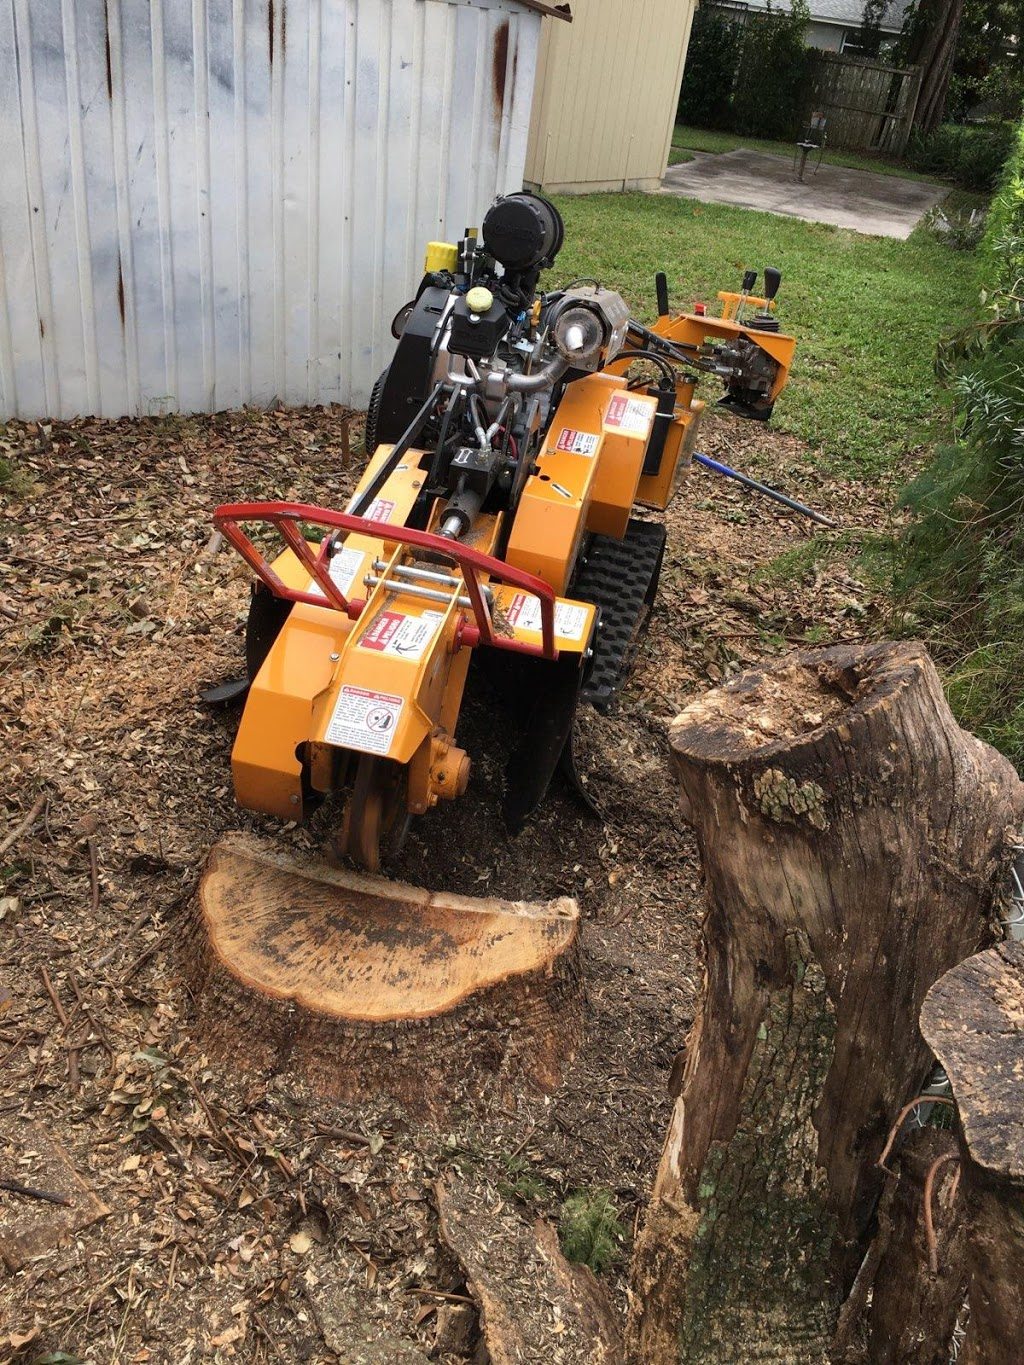 Southern Stump Removal, LLC - point of interest  | Photo 9 of 10 | Address: 1585 Waterwitch Dr, Orlando, FL 32806, USA | Phone: (407) 883-6197